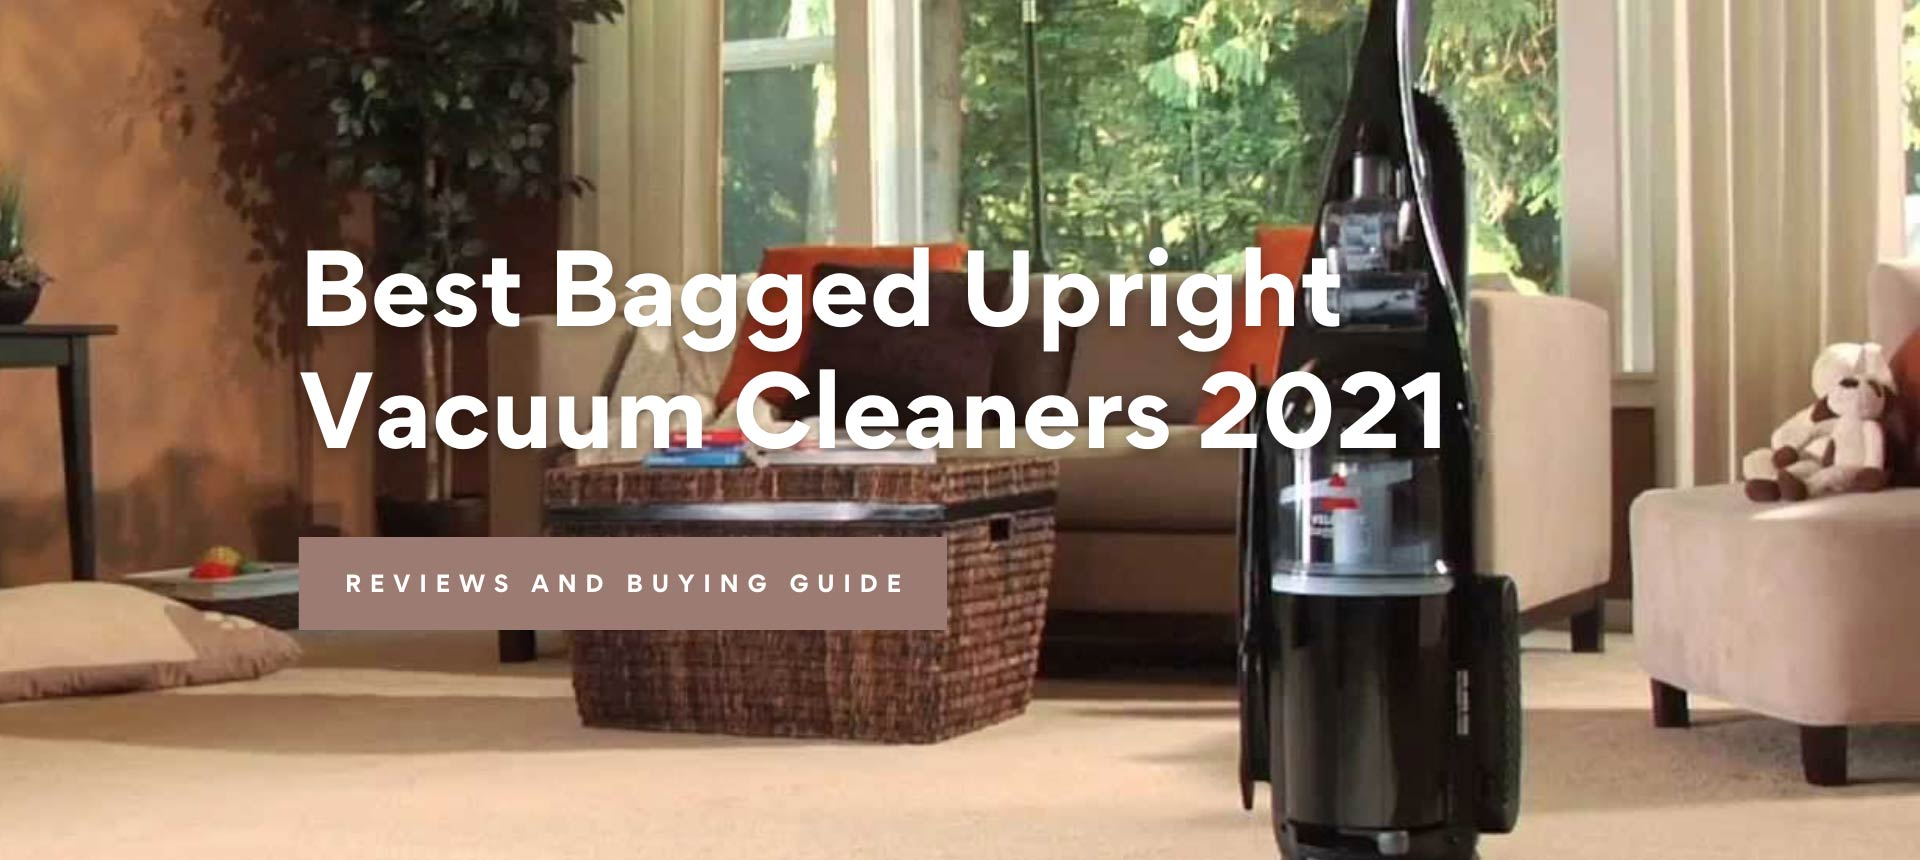 Best Bagged Upright Vacuum Cleaners 2021